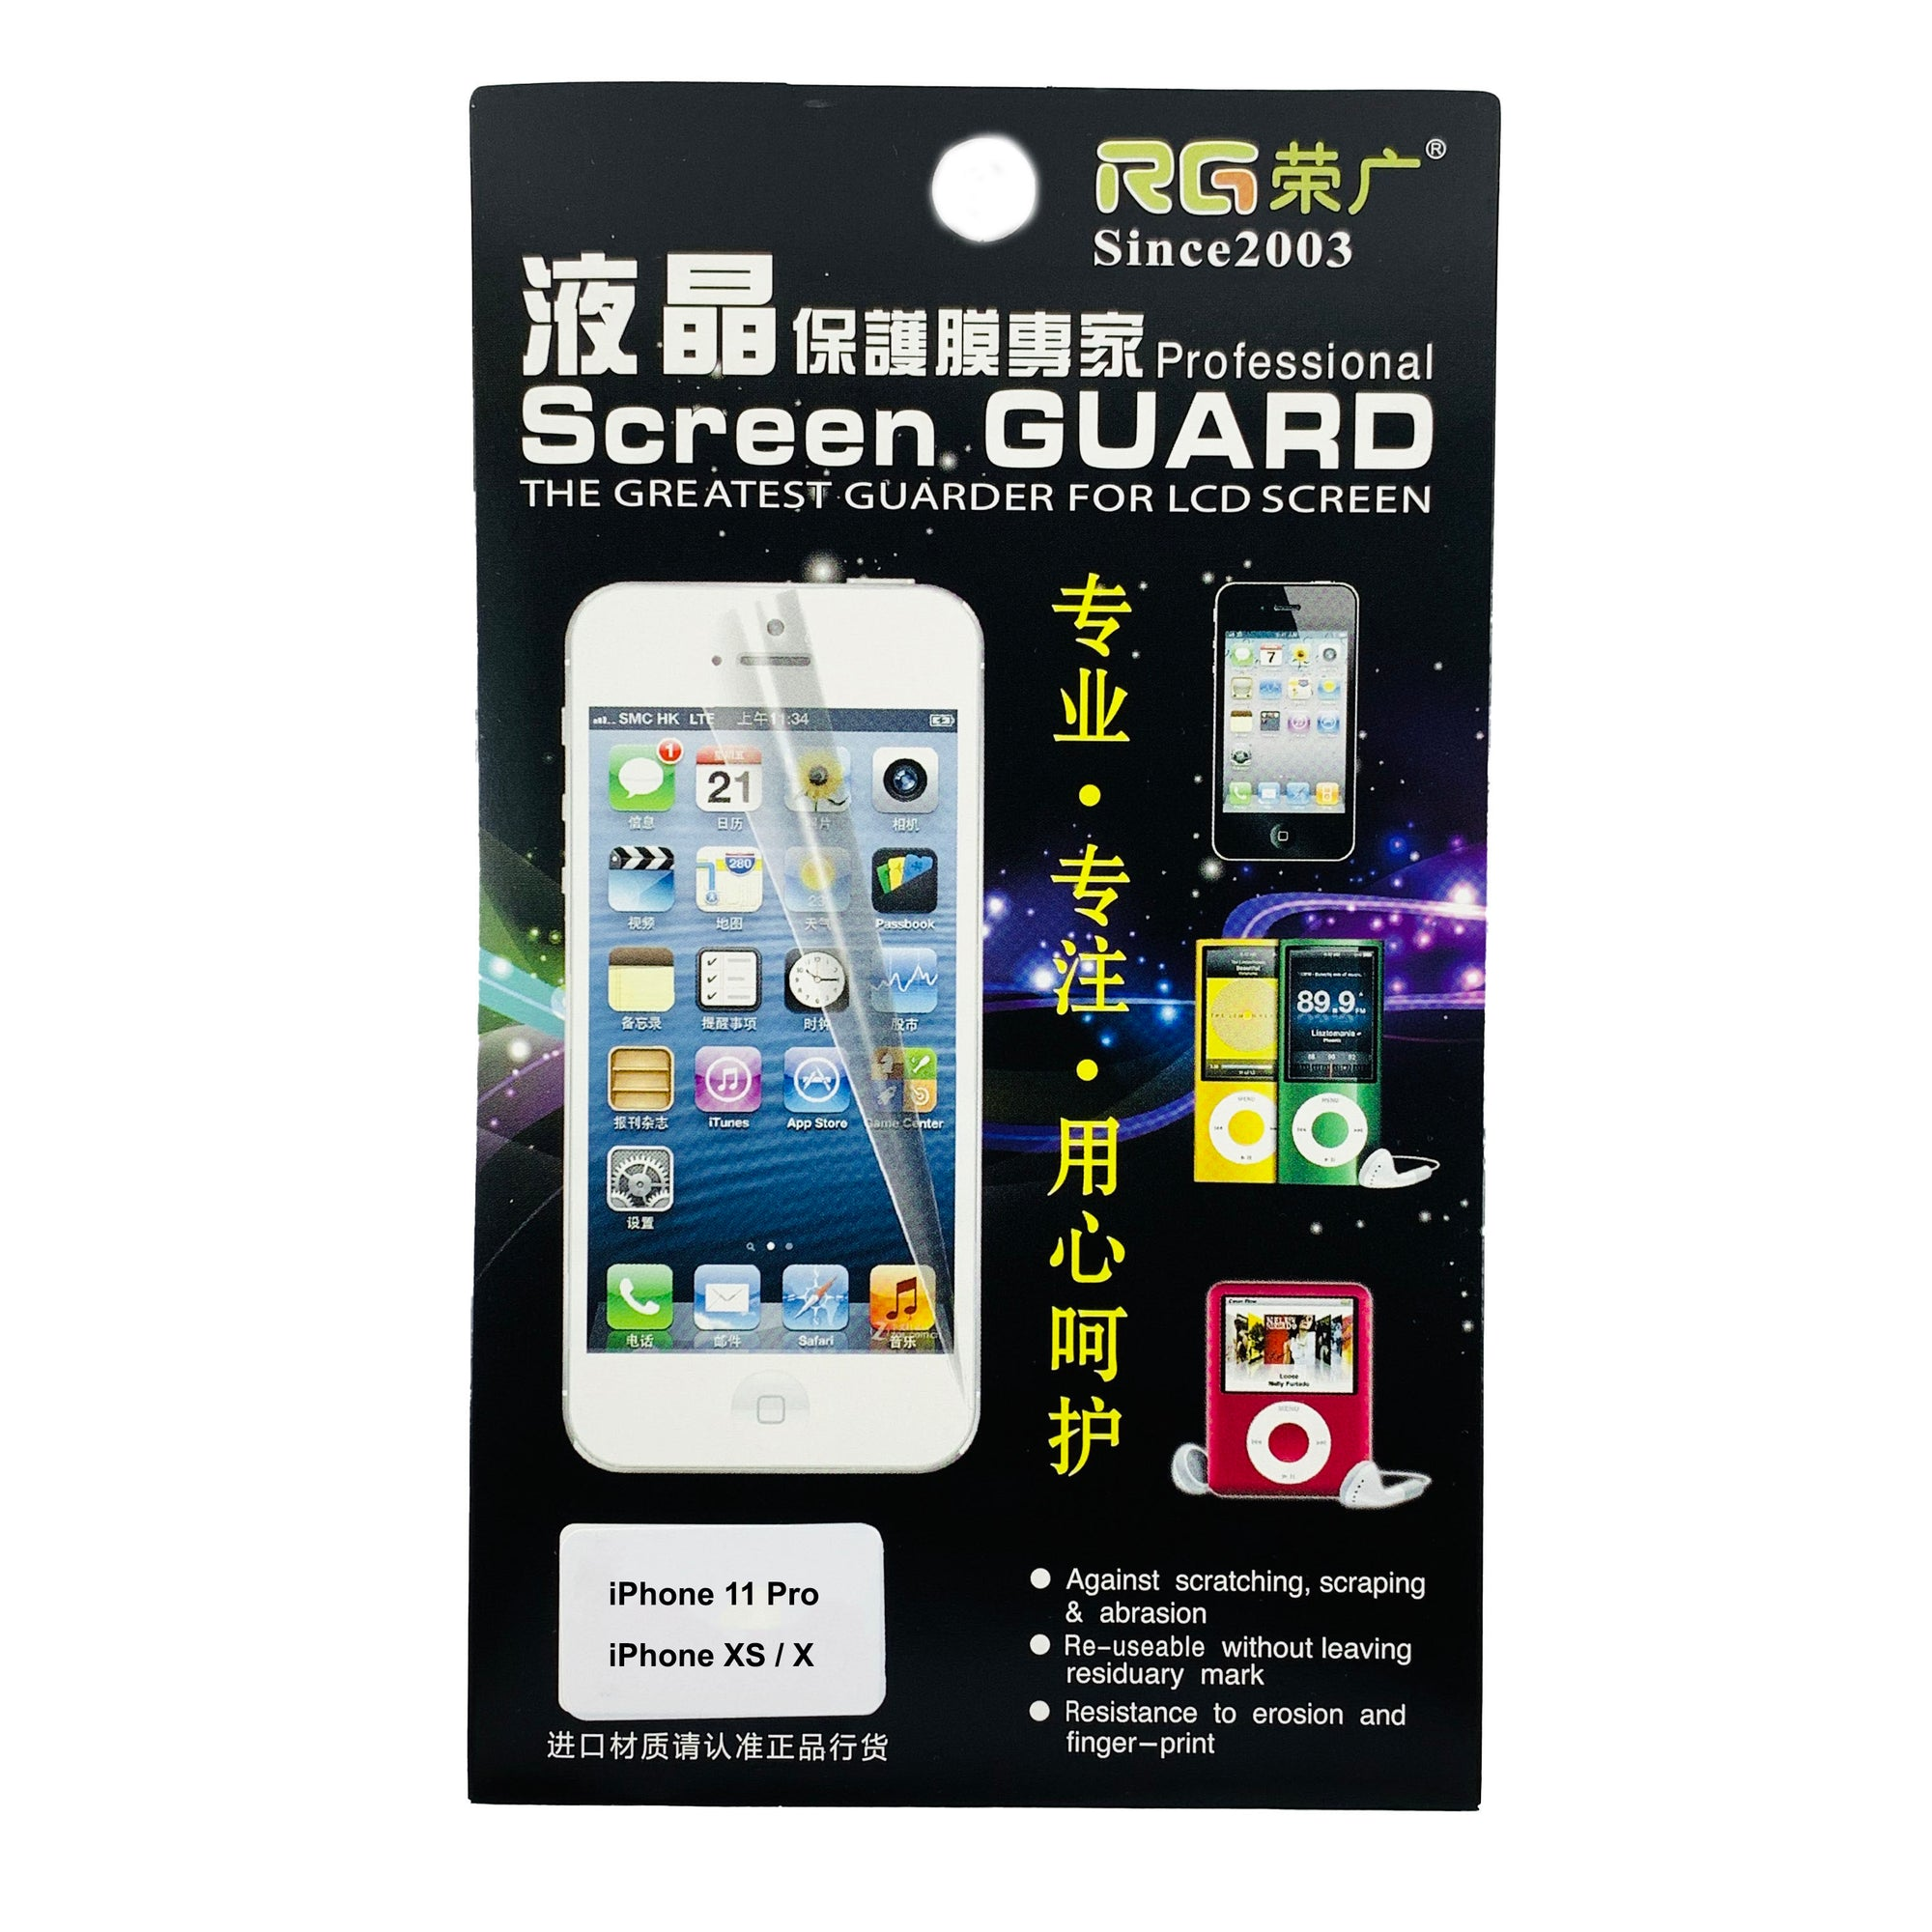 RG Professional Soft Film Screen Protector for iPhone 11 Pro / XS / X (Clear) 2-PACK